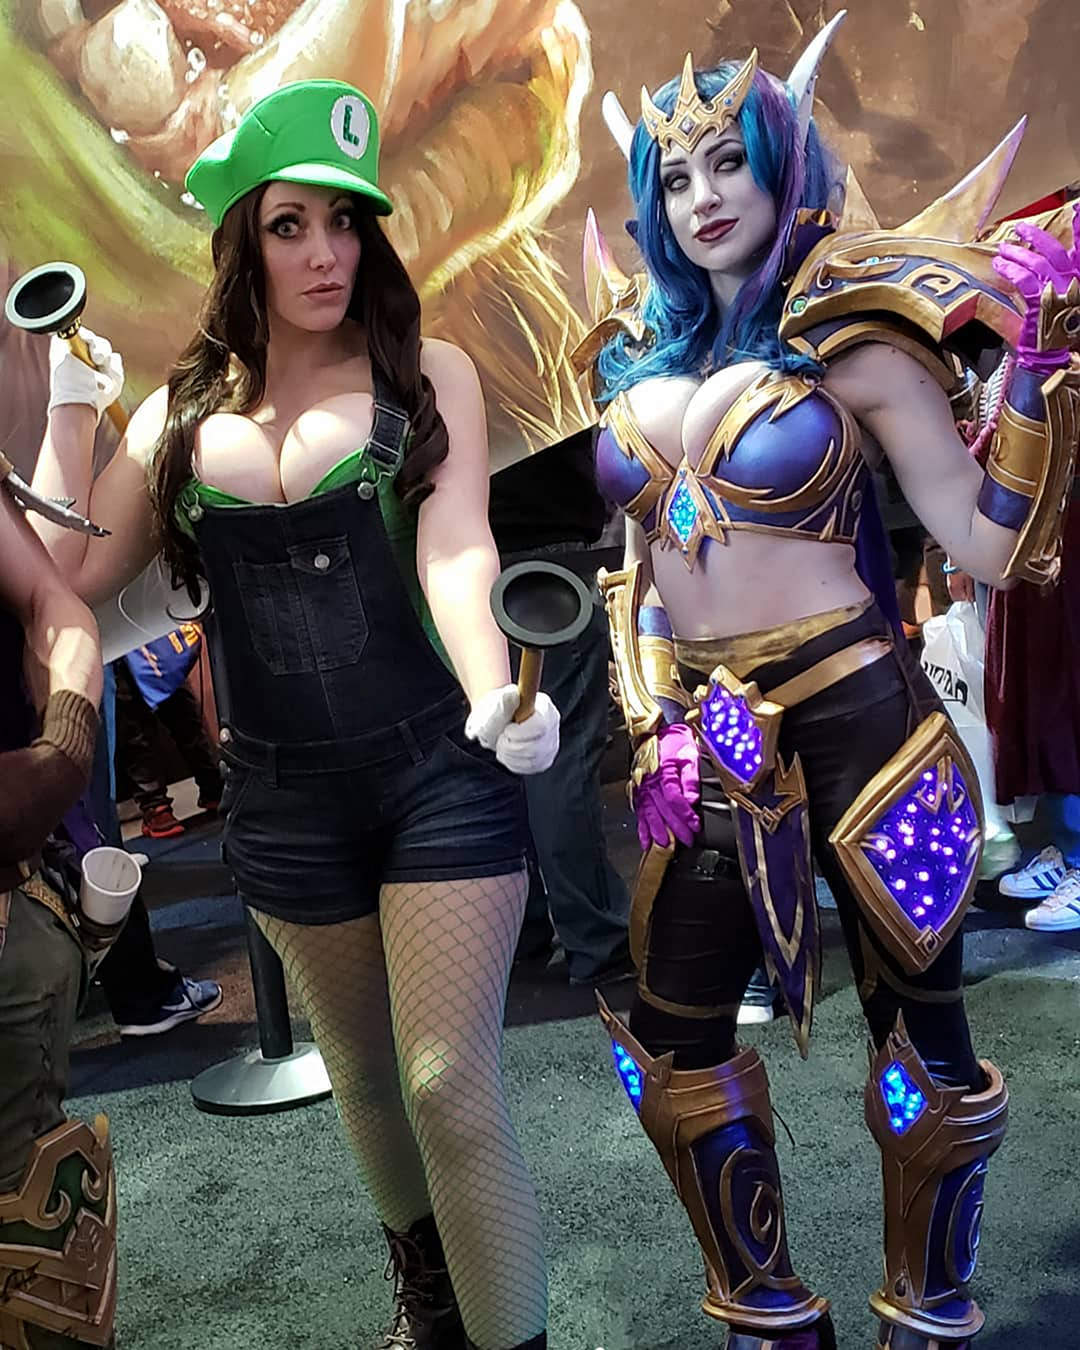 Alina Masquerade As Luigi And Azura Cosplay As A Void Elf